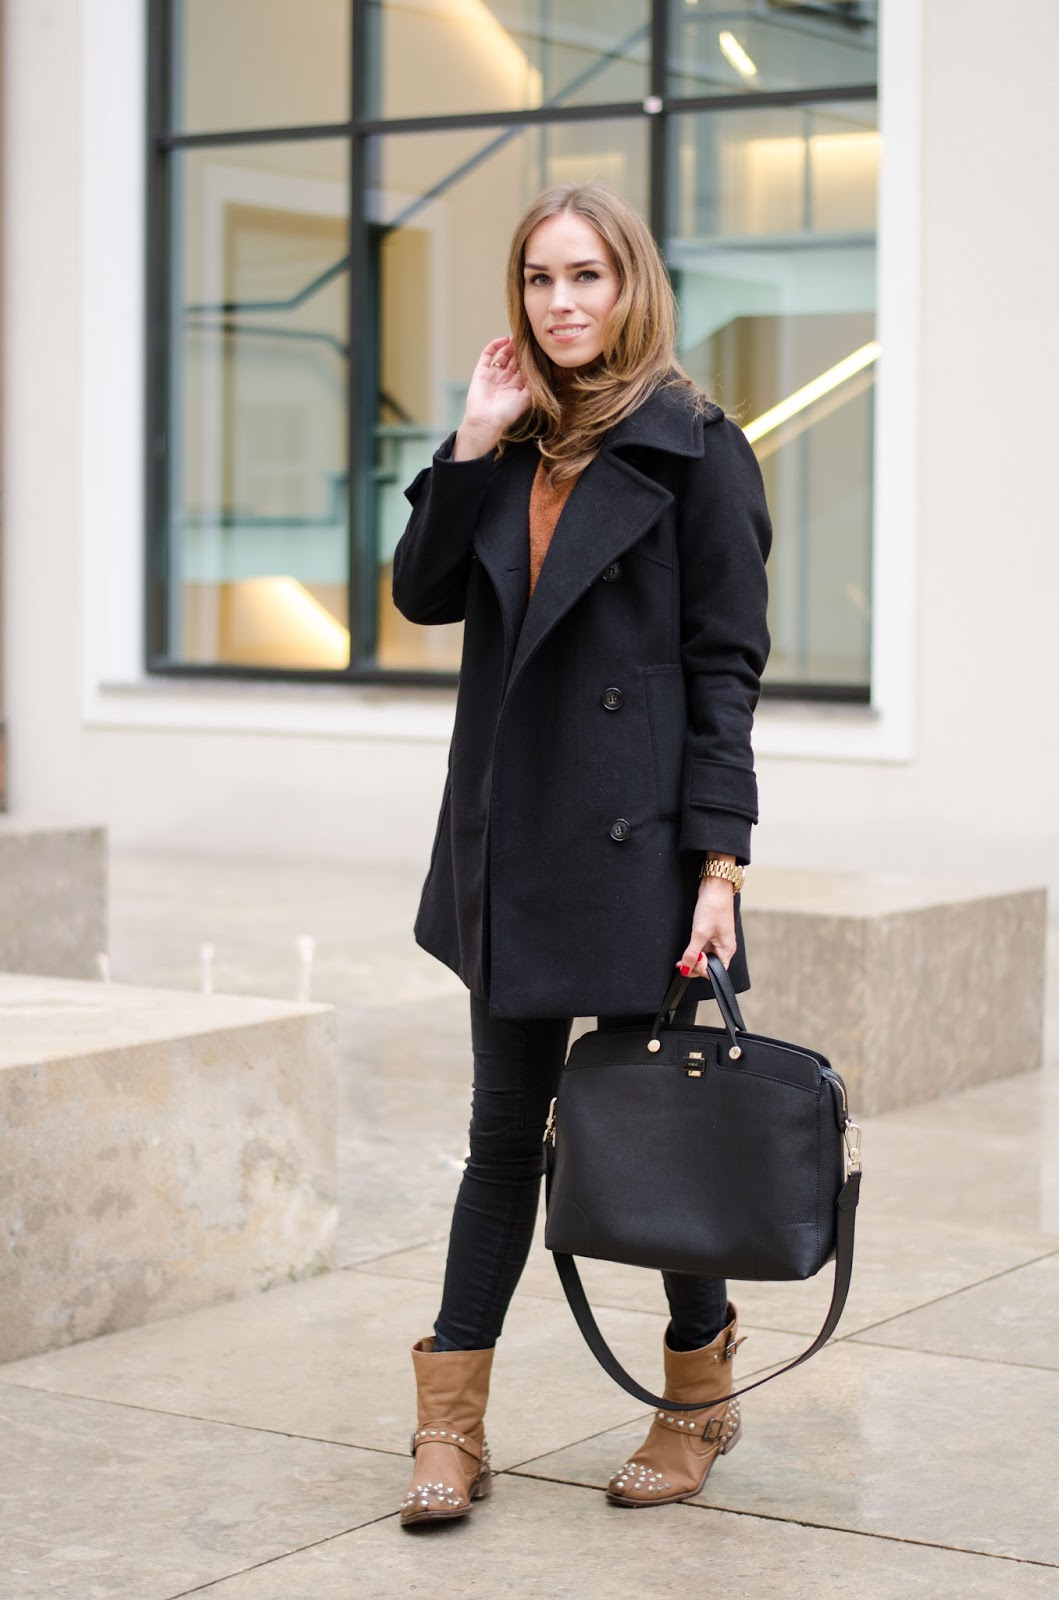 kristjaana mere pea coat jeans ankle boots fall outfit look fashion